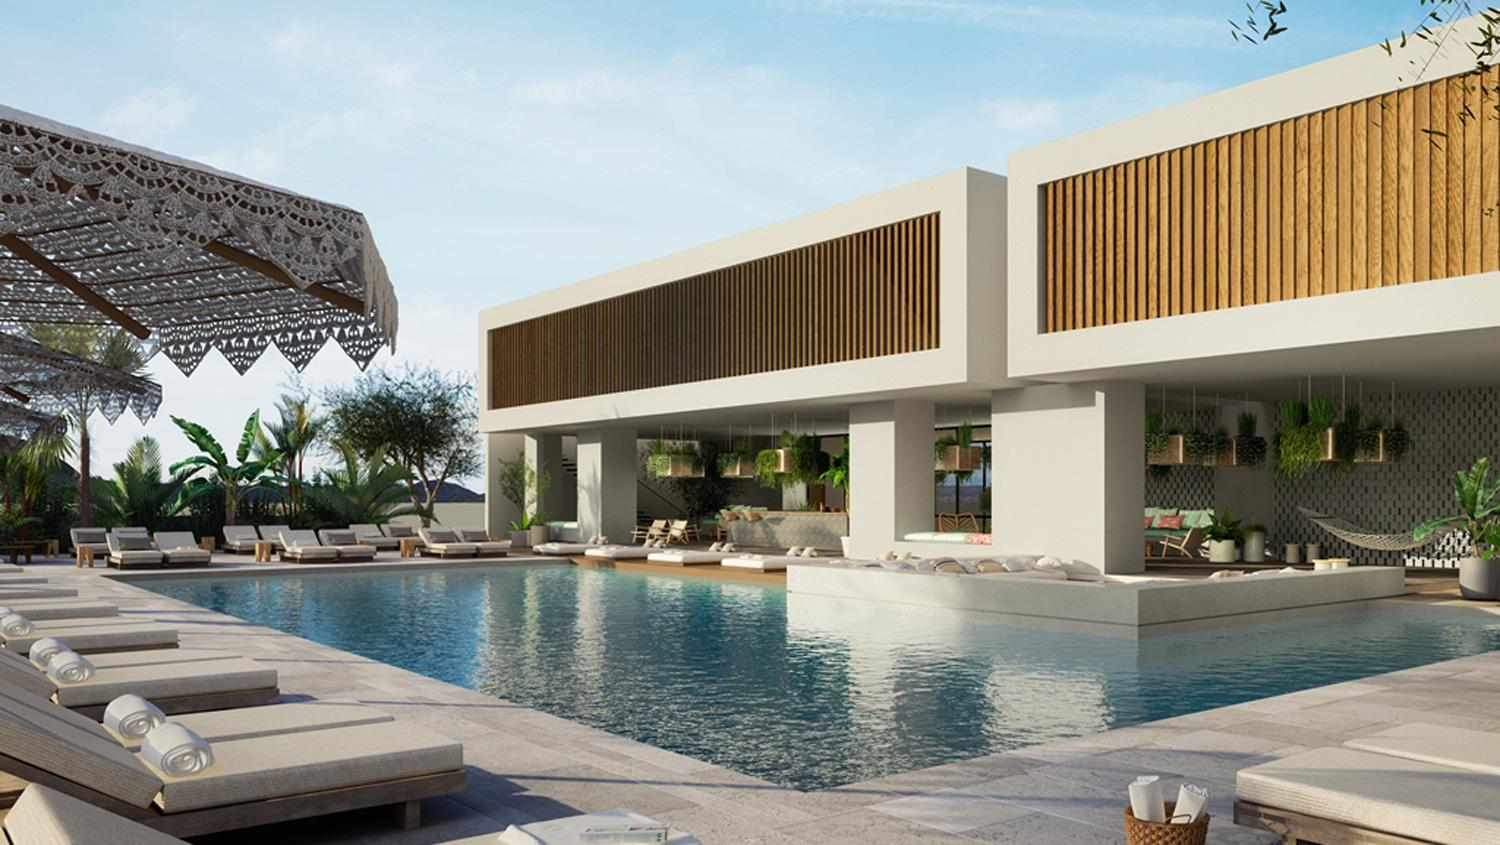 Thomas Cook's new Sunprime Pearl Beach resort on Kos